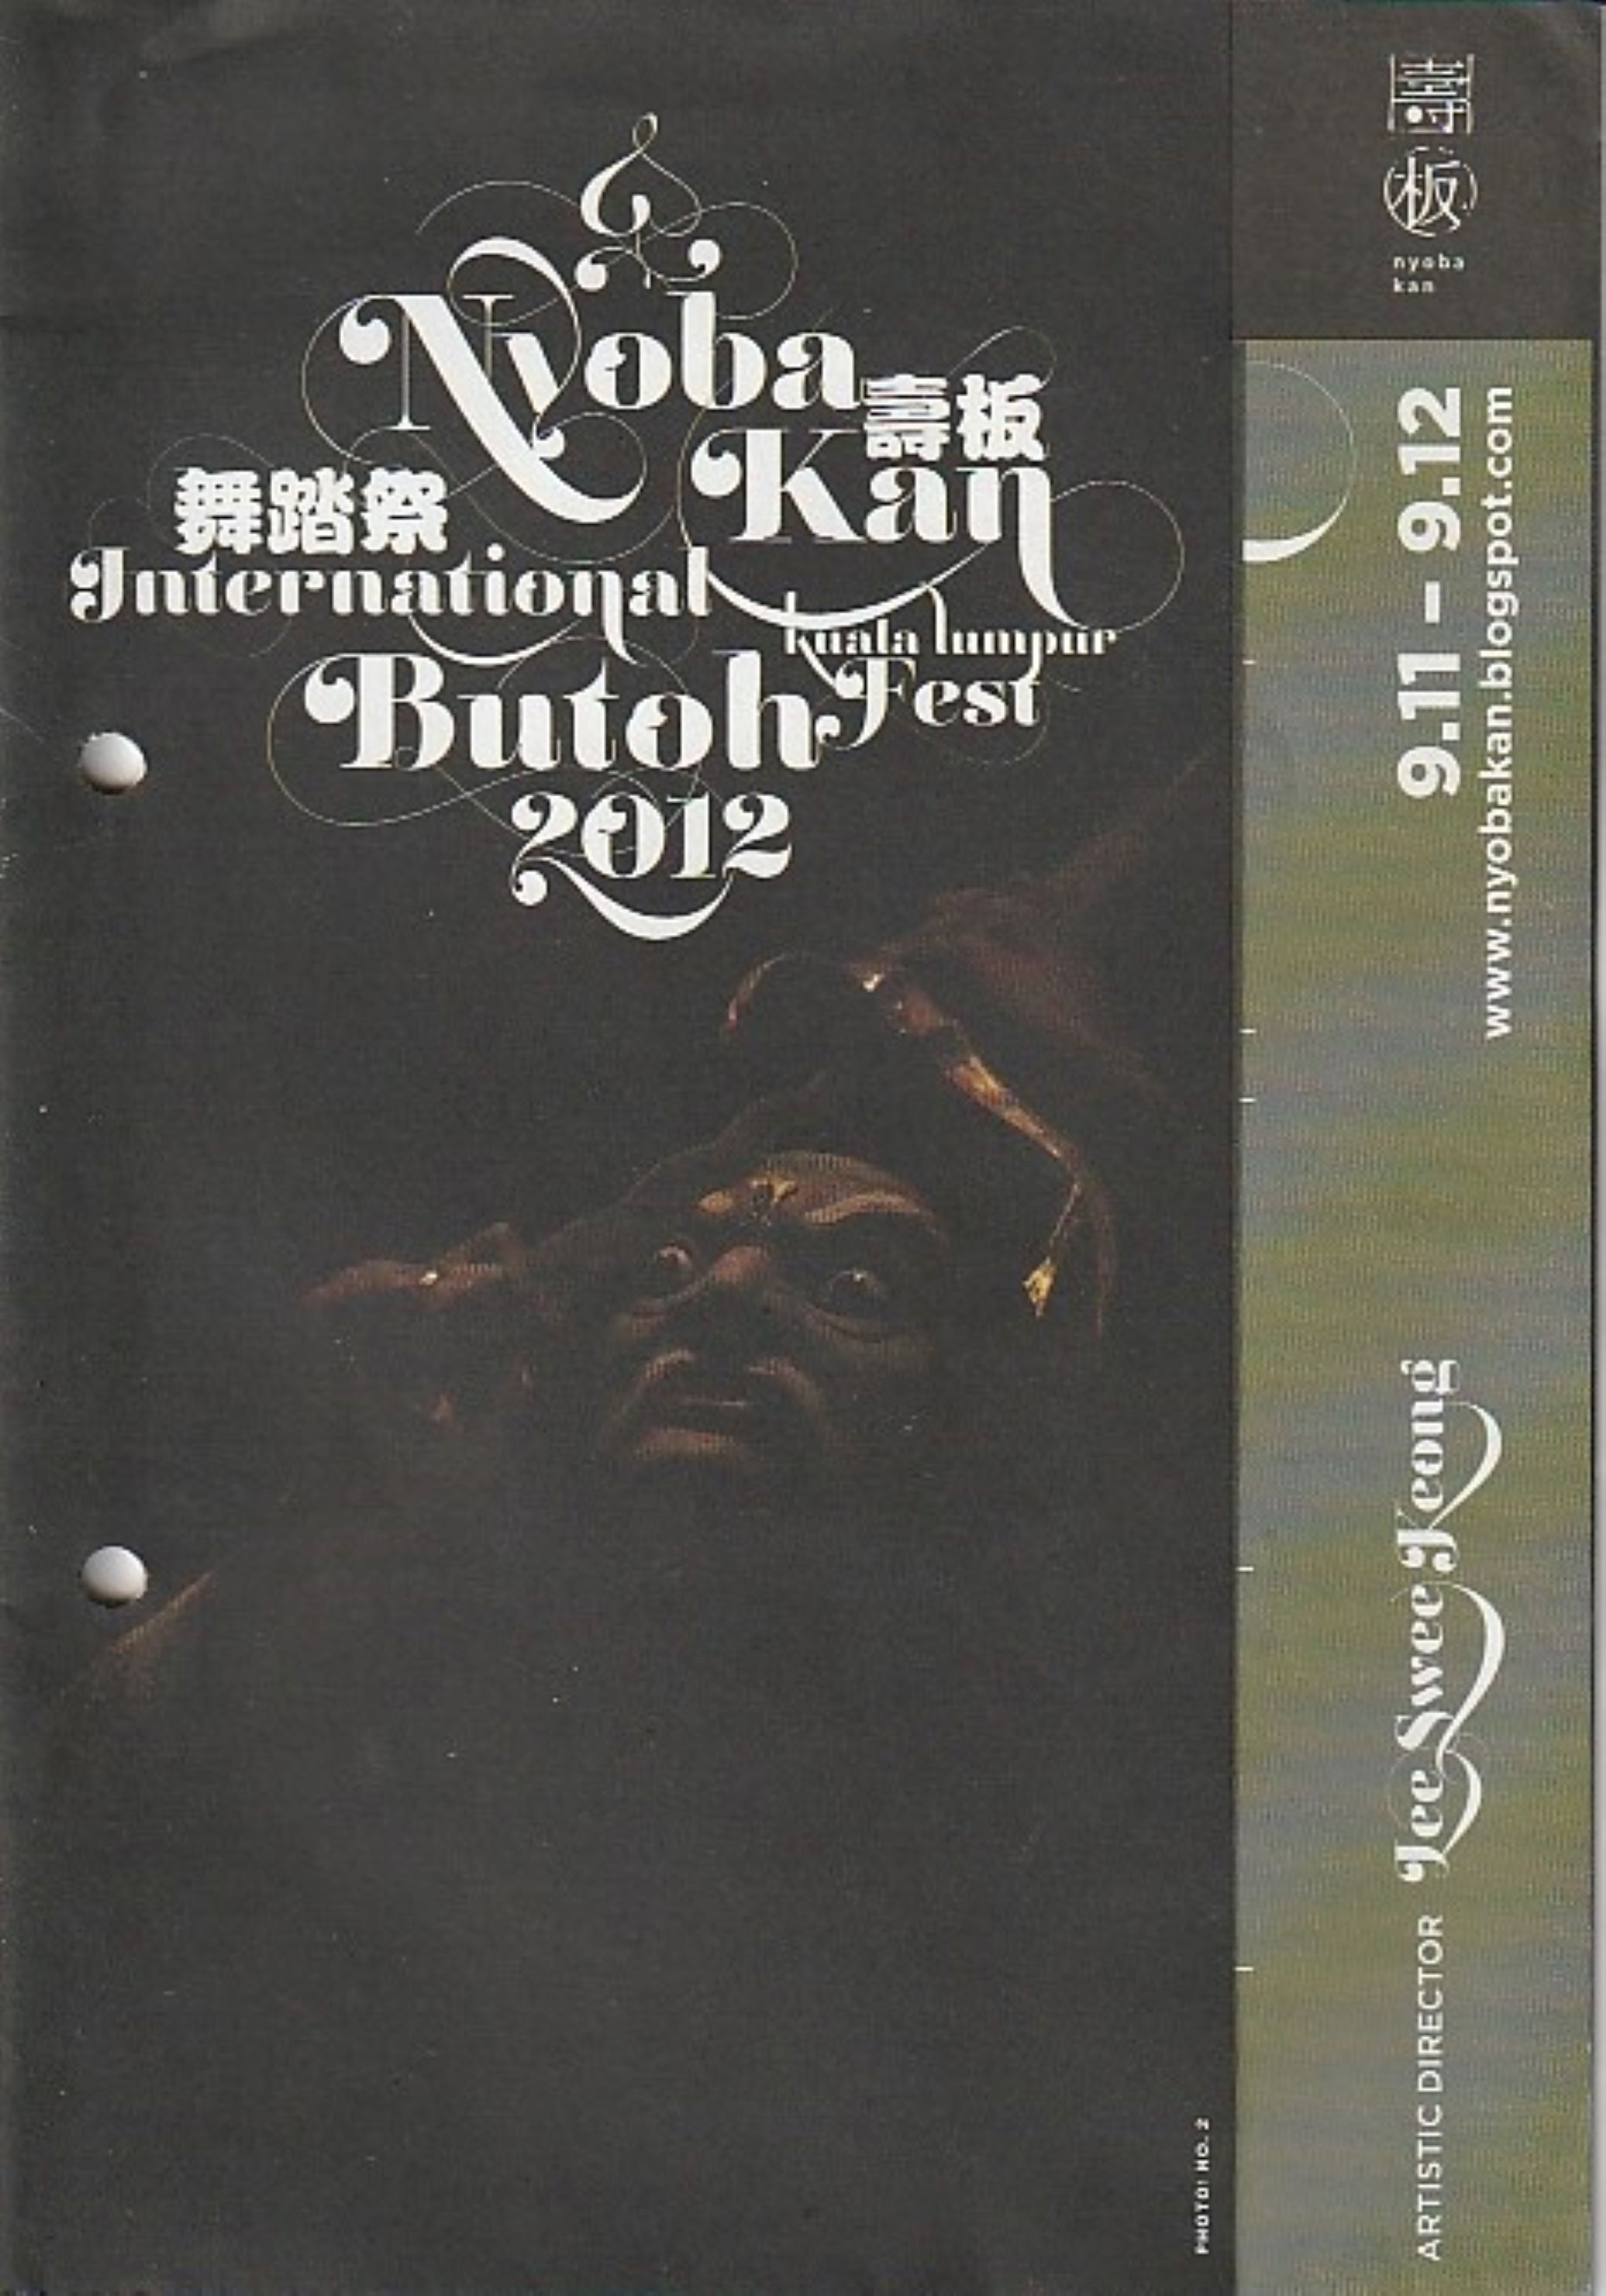 2012 Nyoba Kan International Butoh Festival Cover